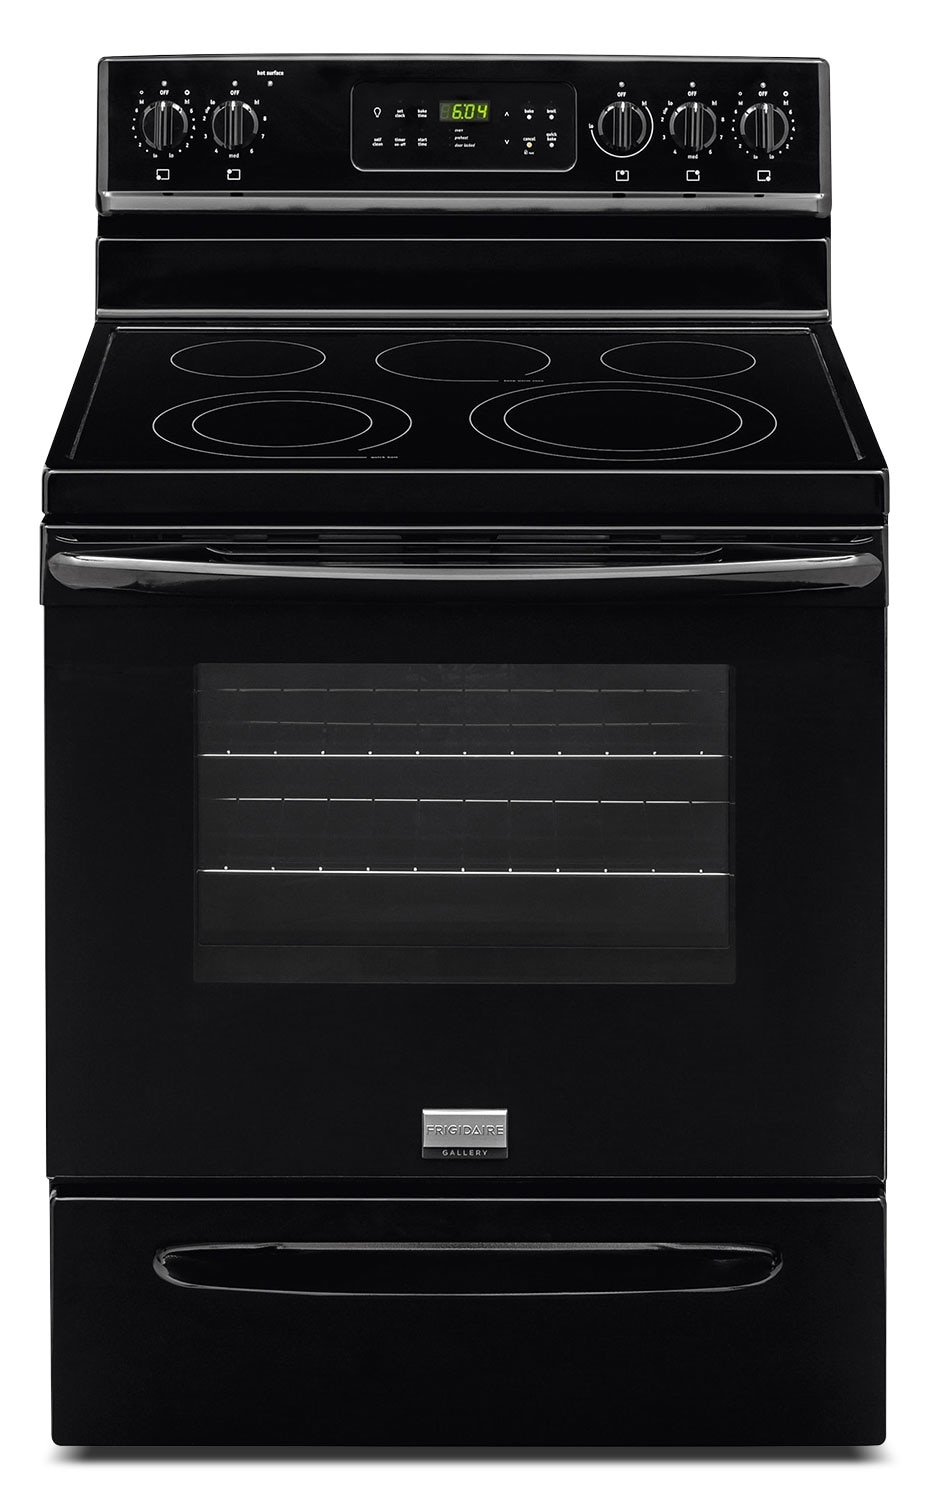 Frigidaire Gallery Black Freestanding Electric Convection Range (5.7 Cu. Ft.) - CGEF3035RB